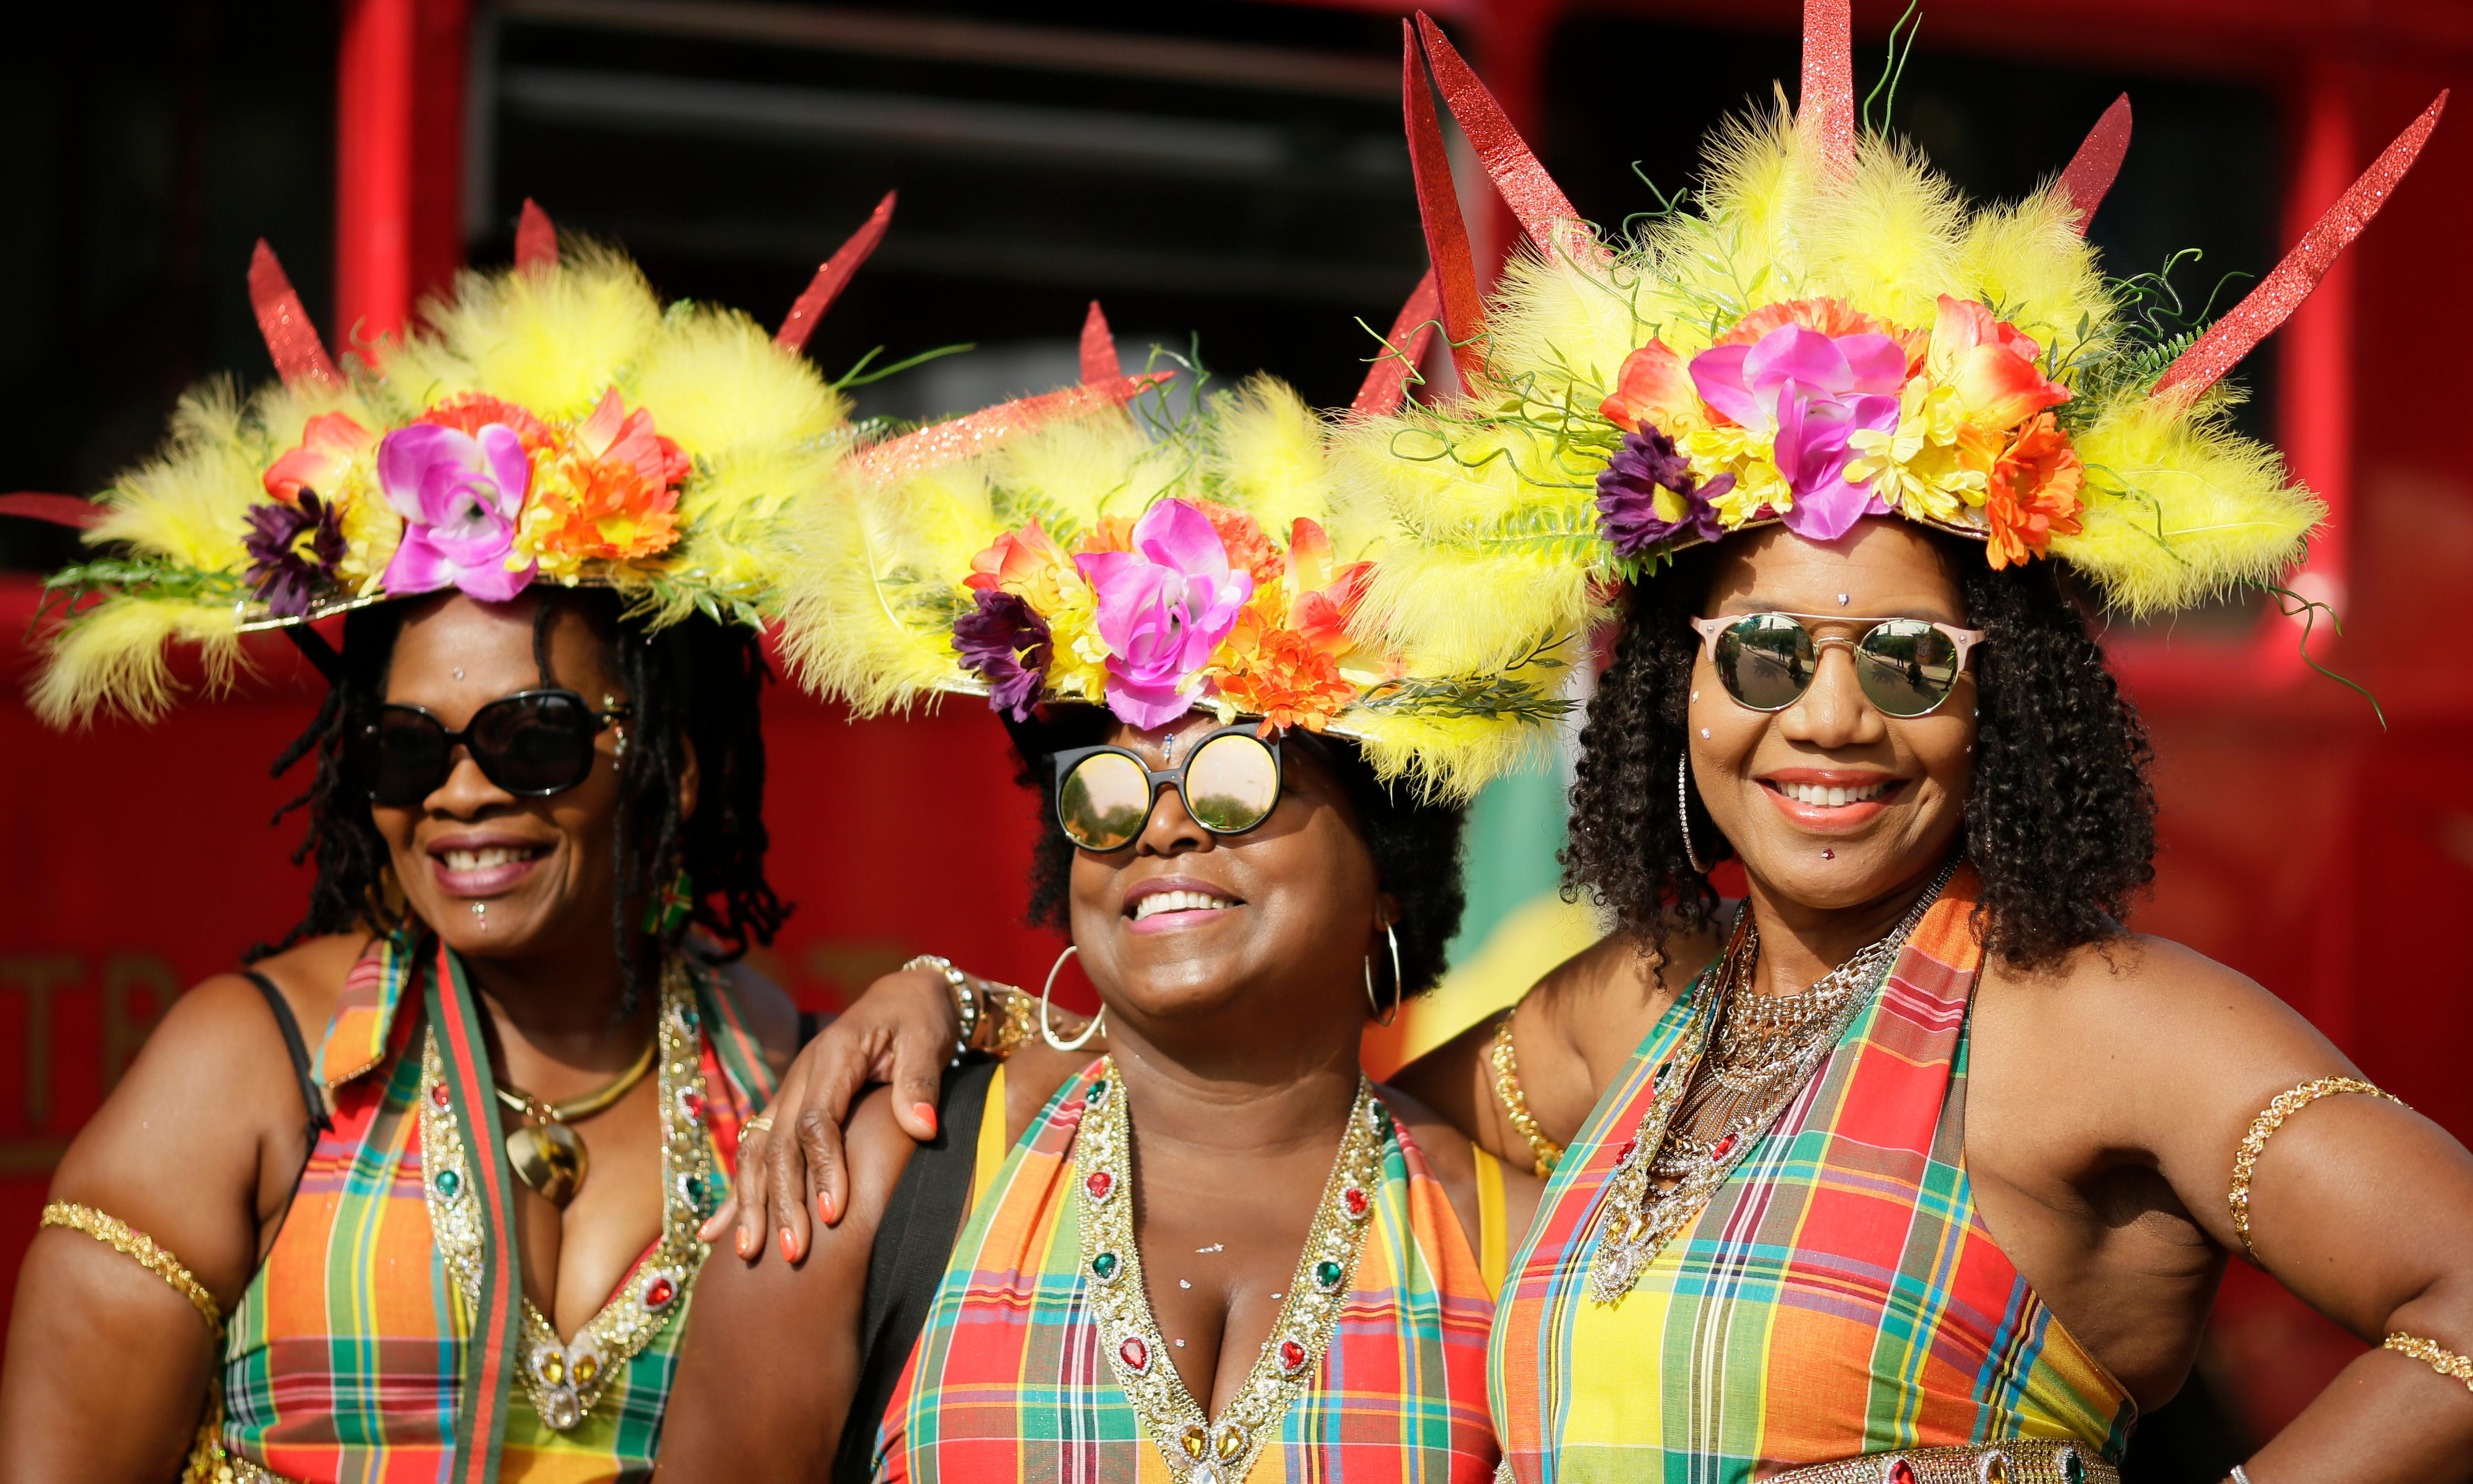 Notting Hill carnival can unite divided country, organisers say